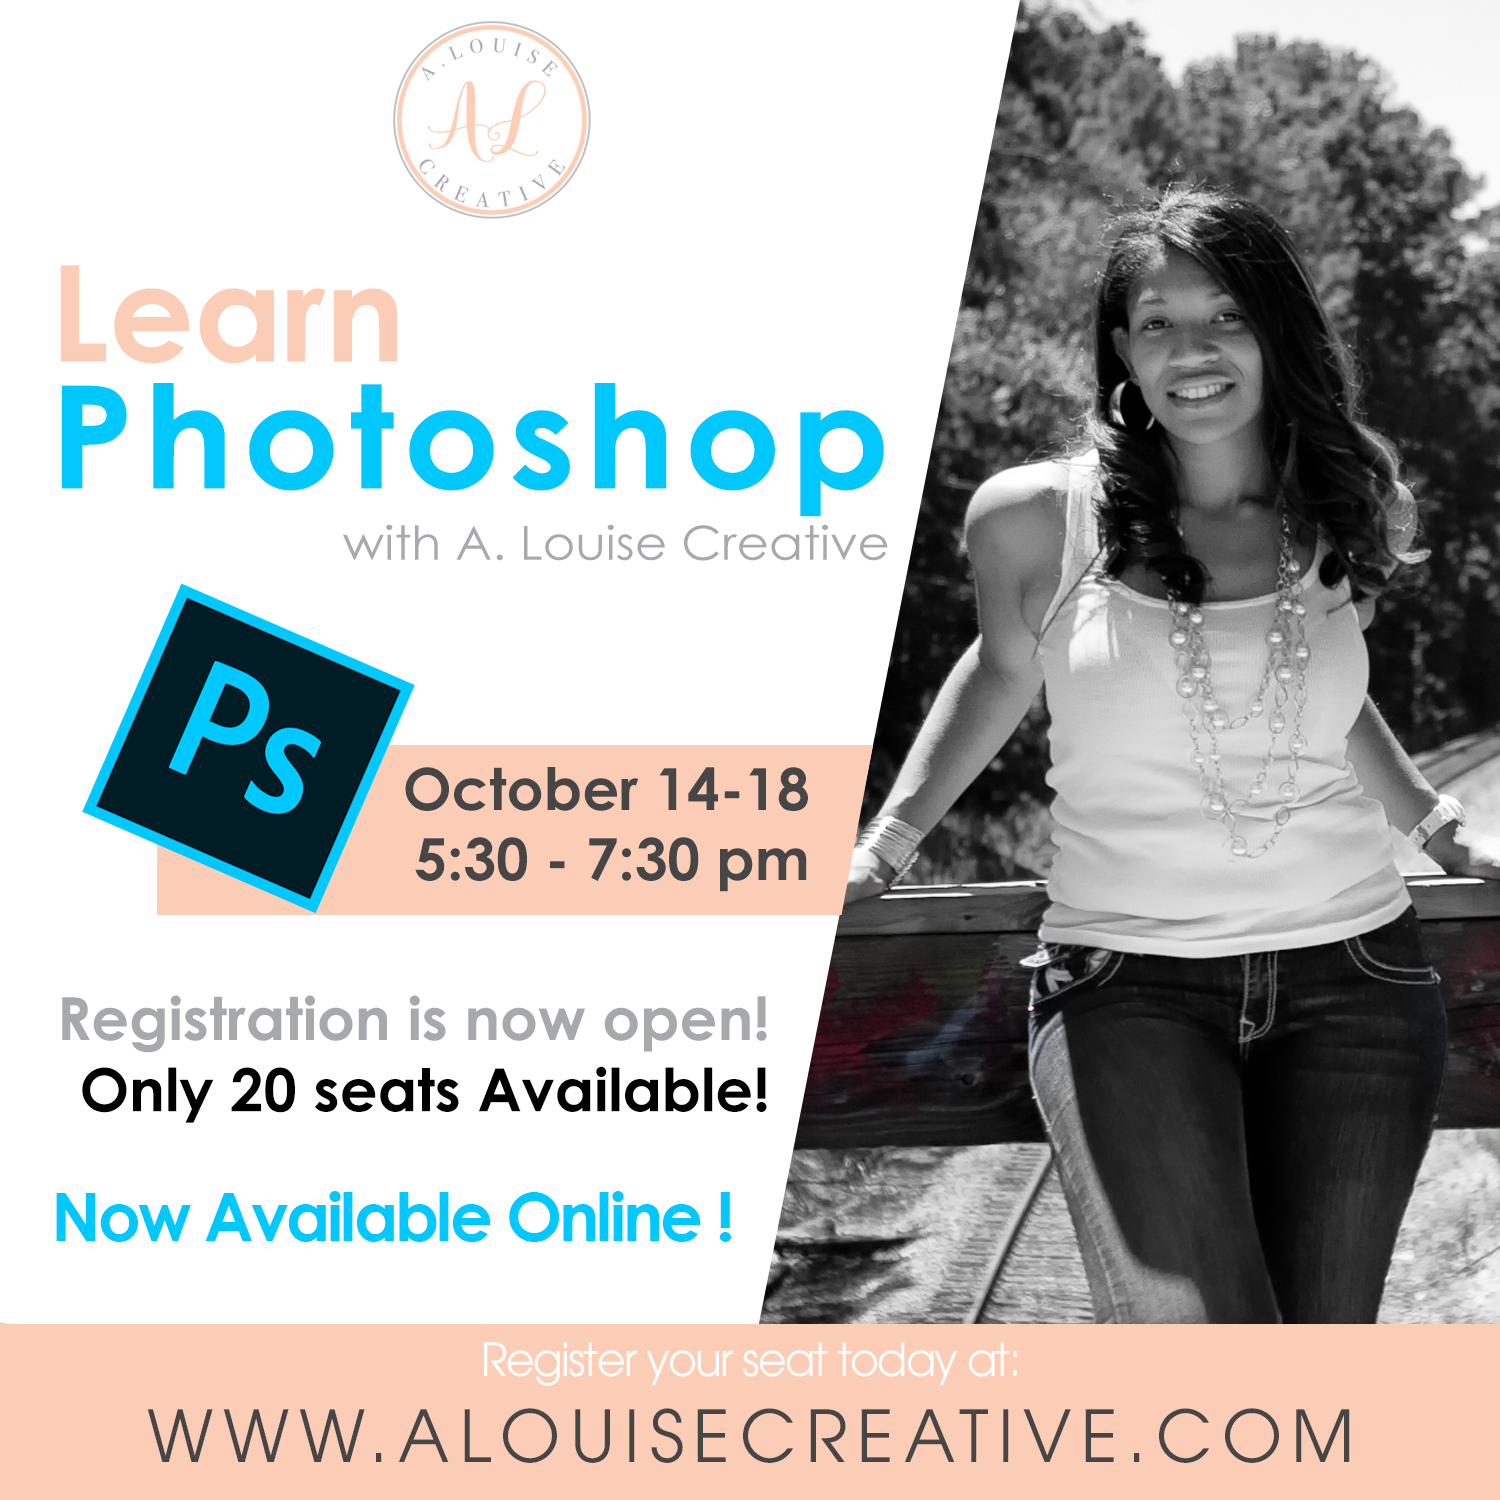 Learn Photoshop Online! from October 14-18 at 5:30 each evening, A. Louise will go Live teaching the basics of Photoshop in practicum for those who want to learn.